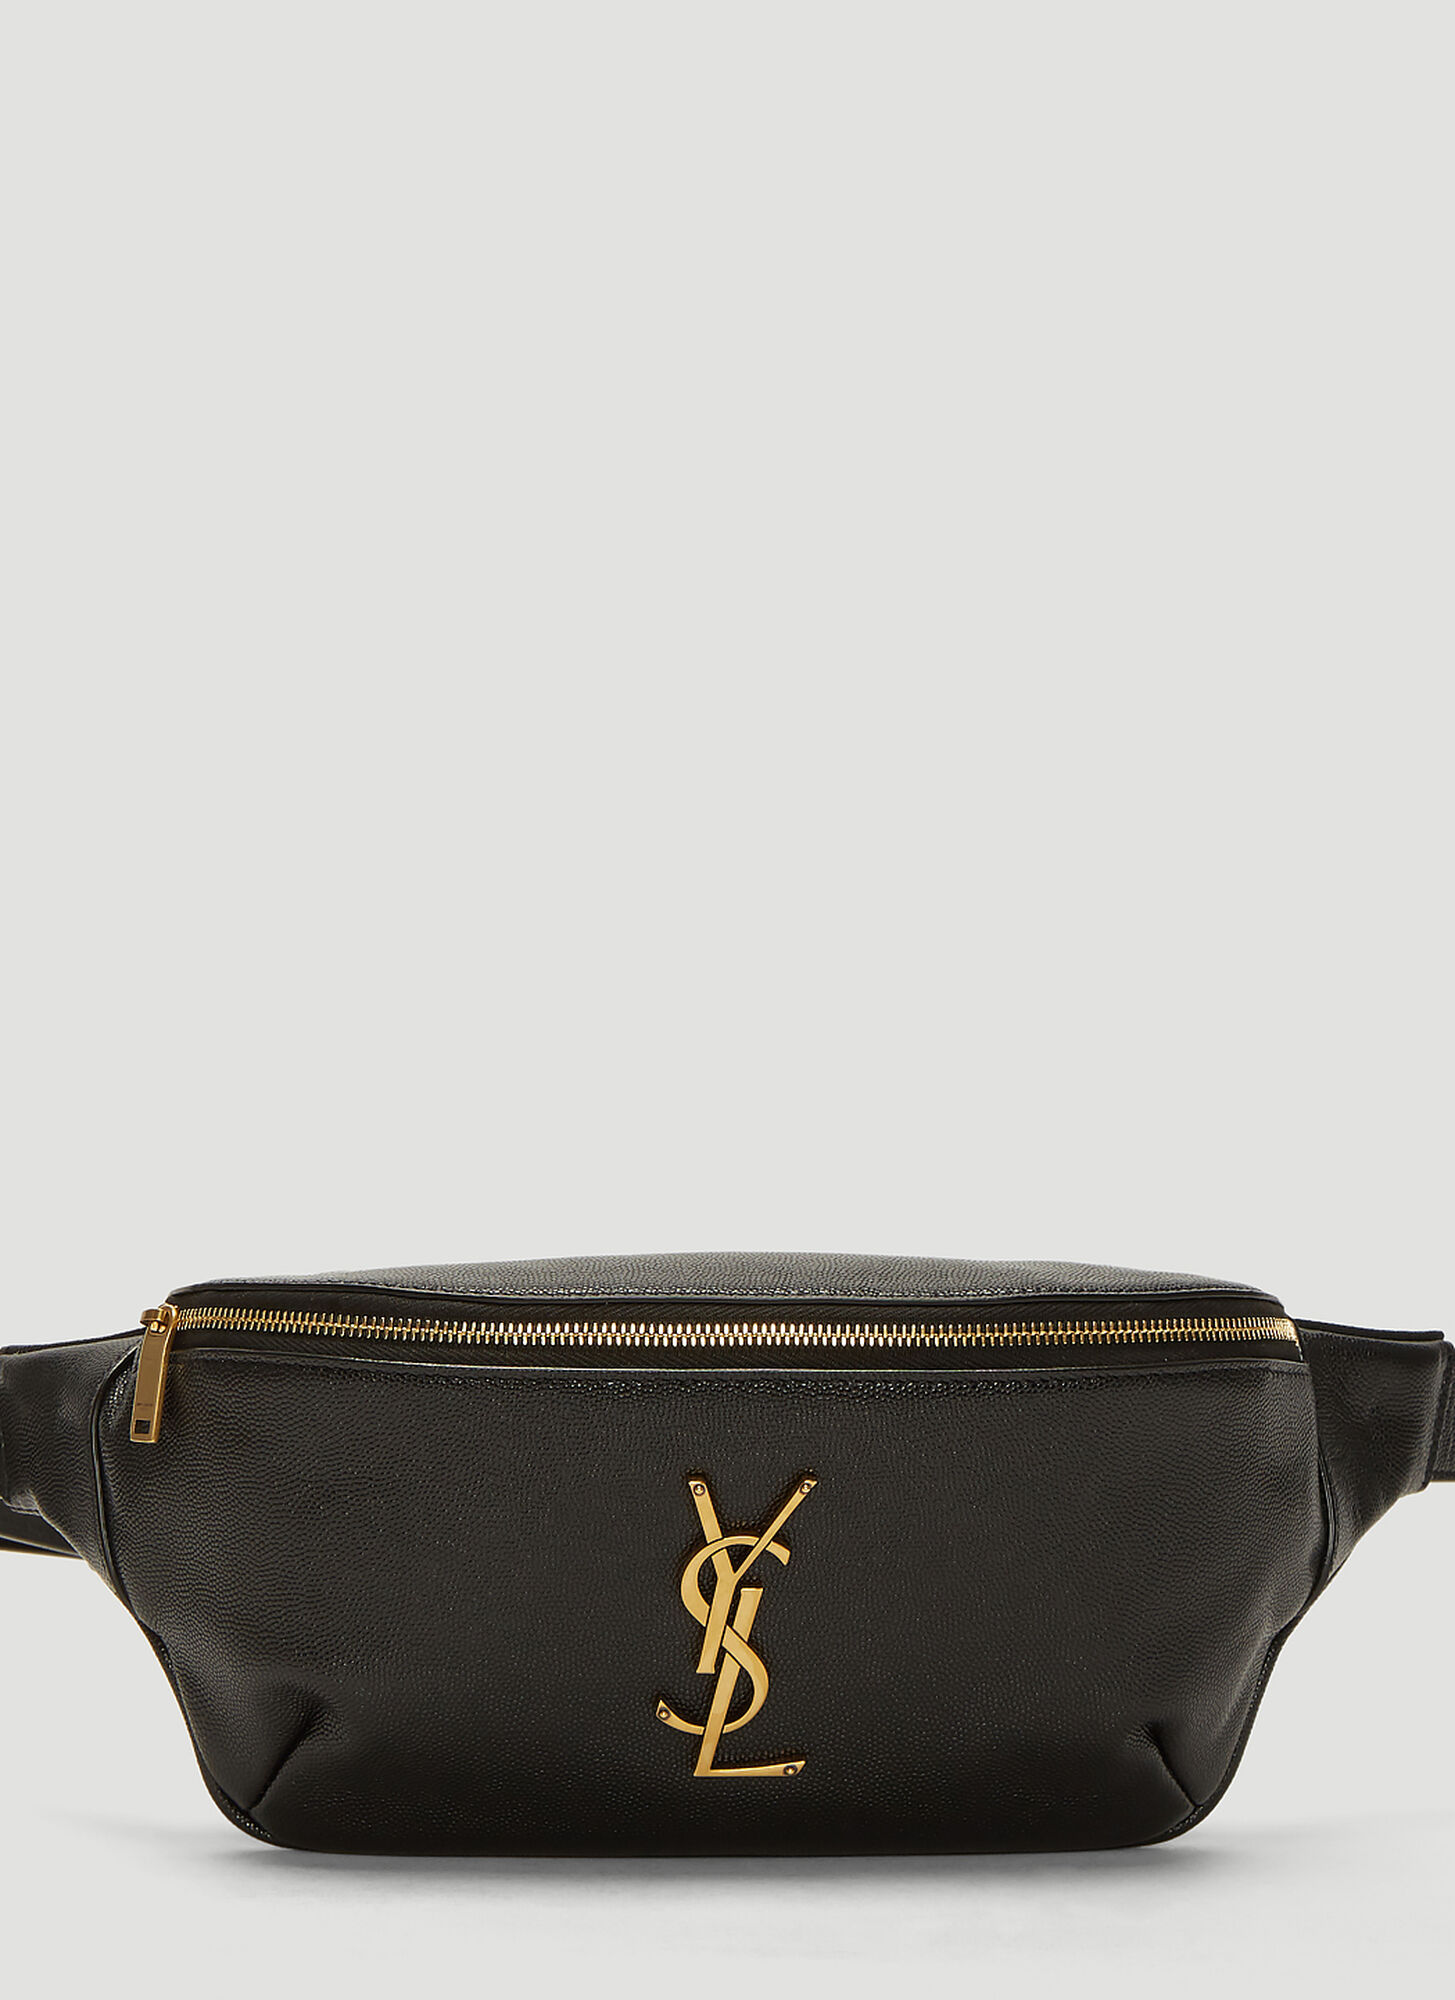 Saint Laurent Leather Monogram Belt Bag in Black